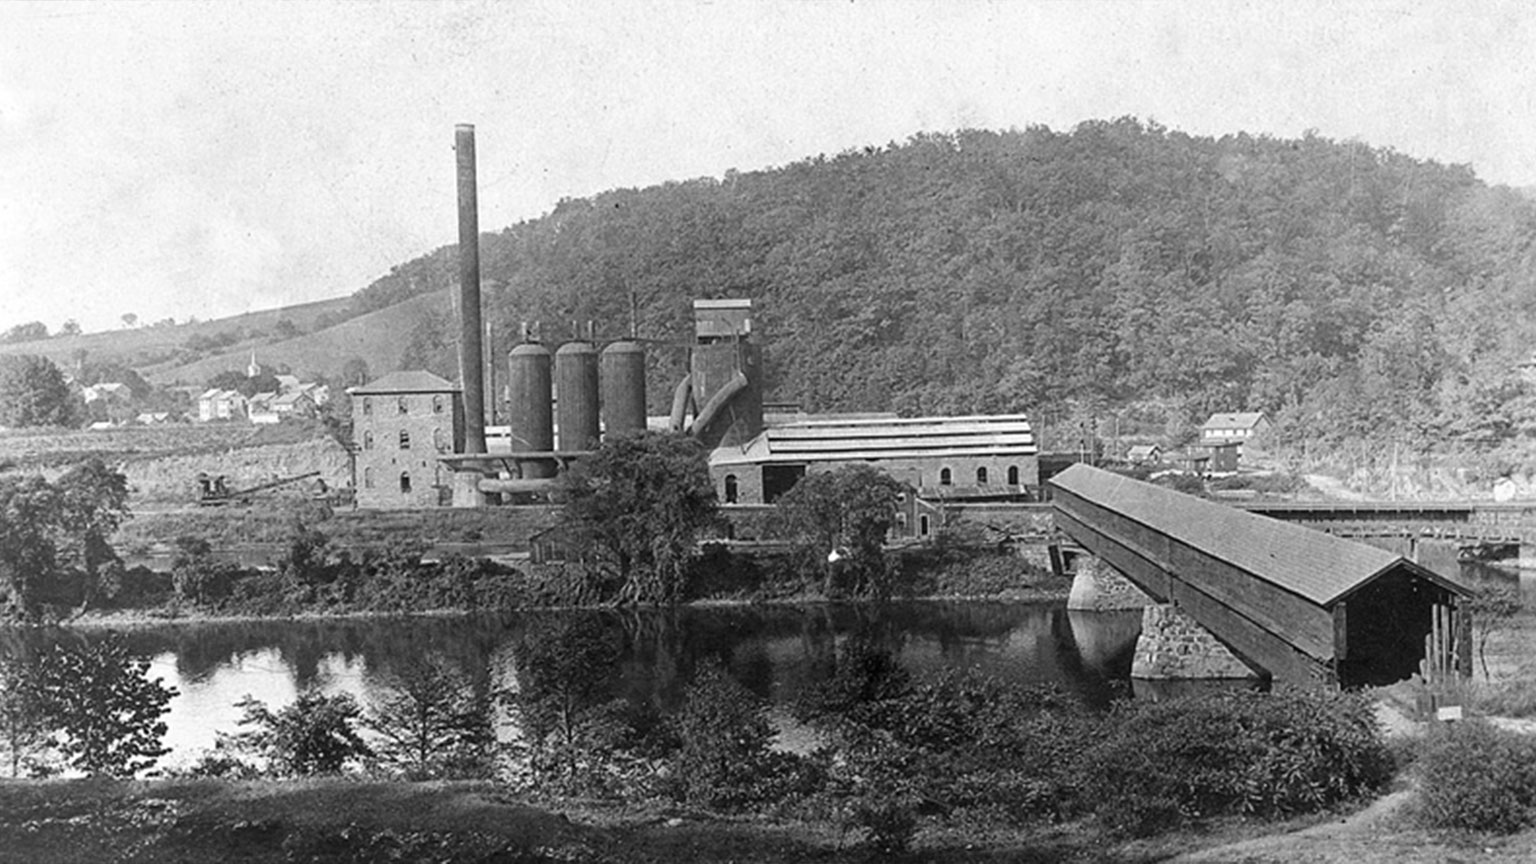 This is one of the factories that took iron ore and turned it into iron.